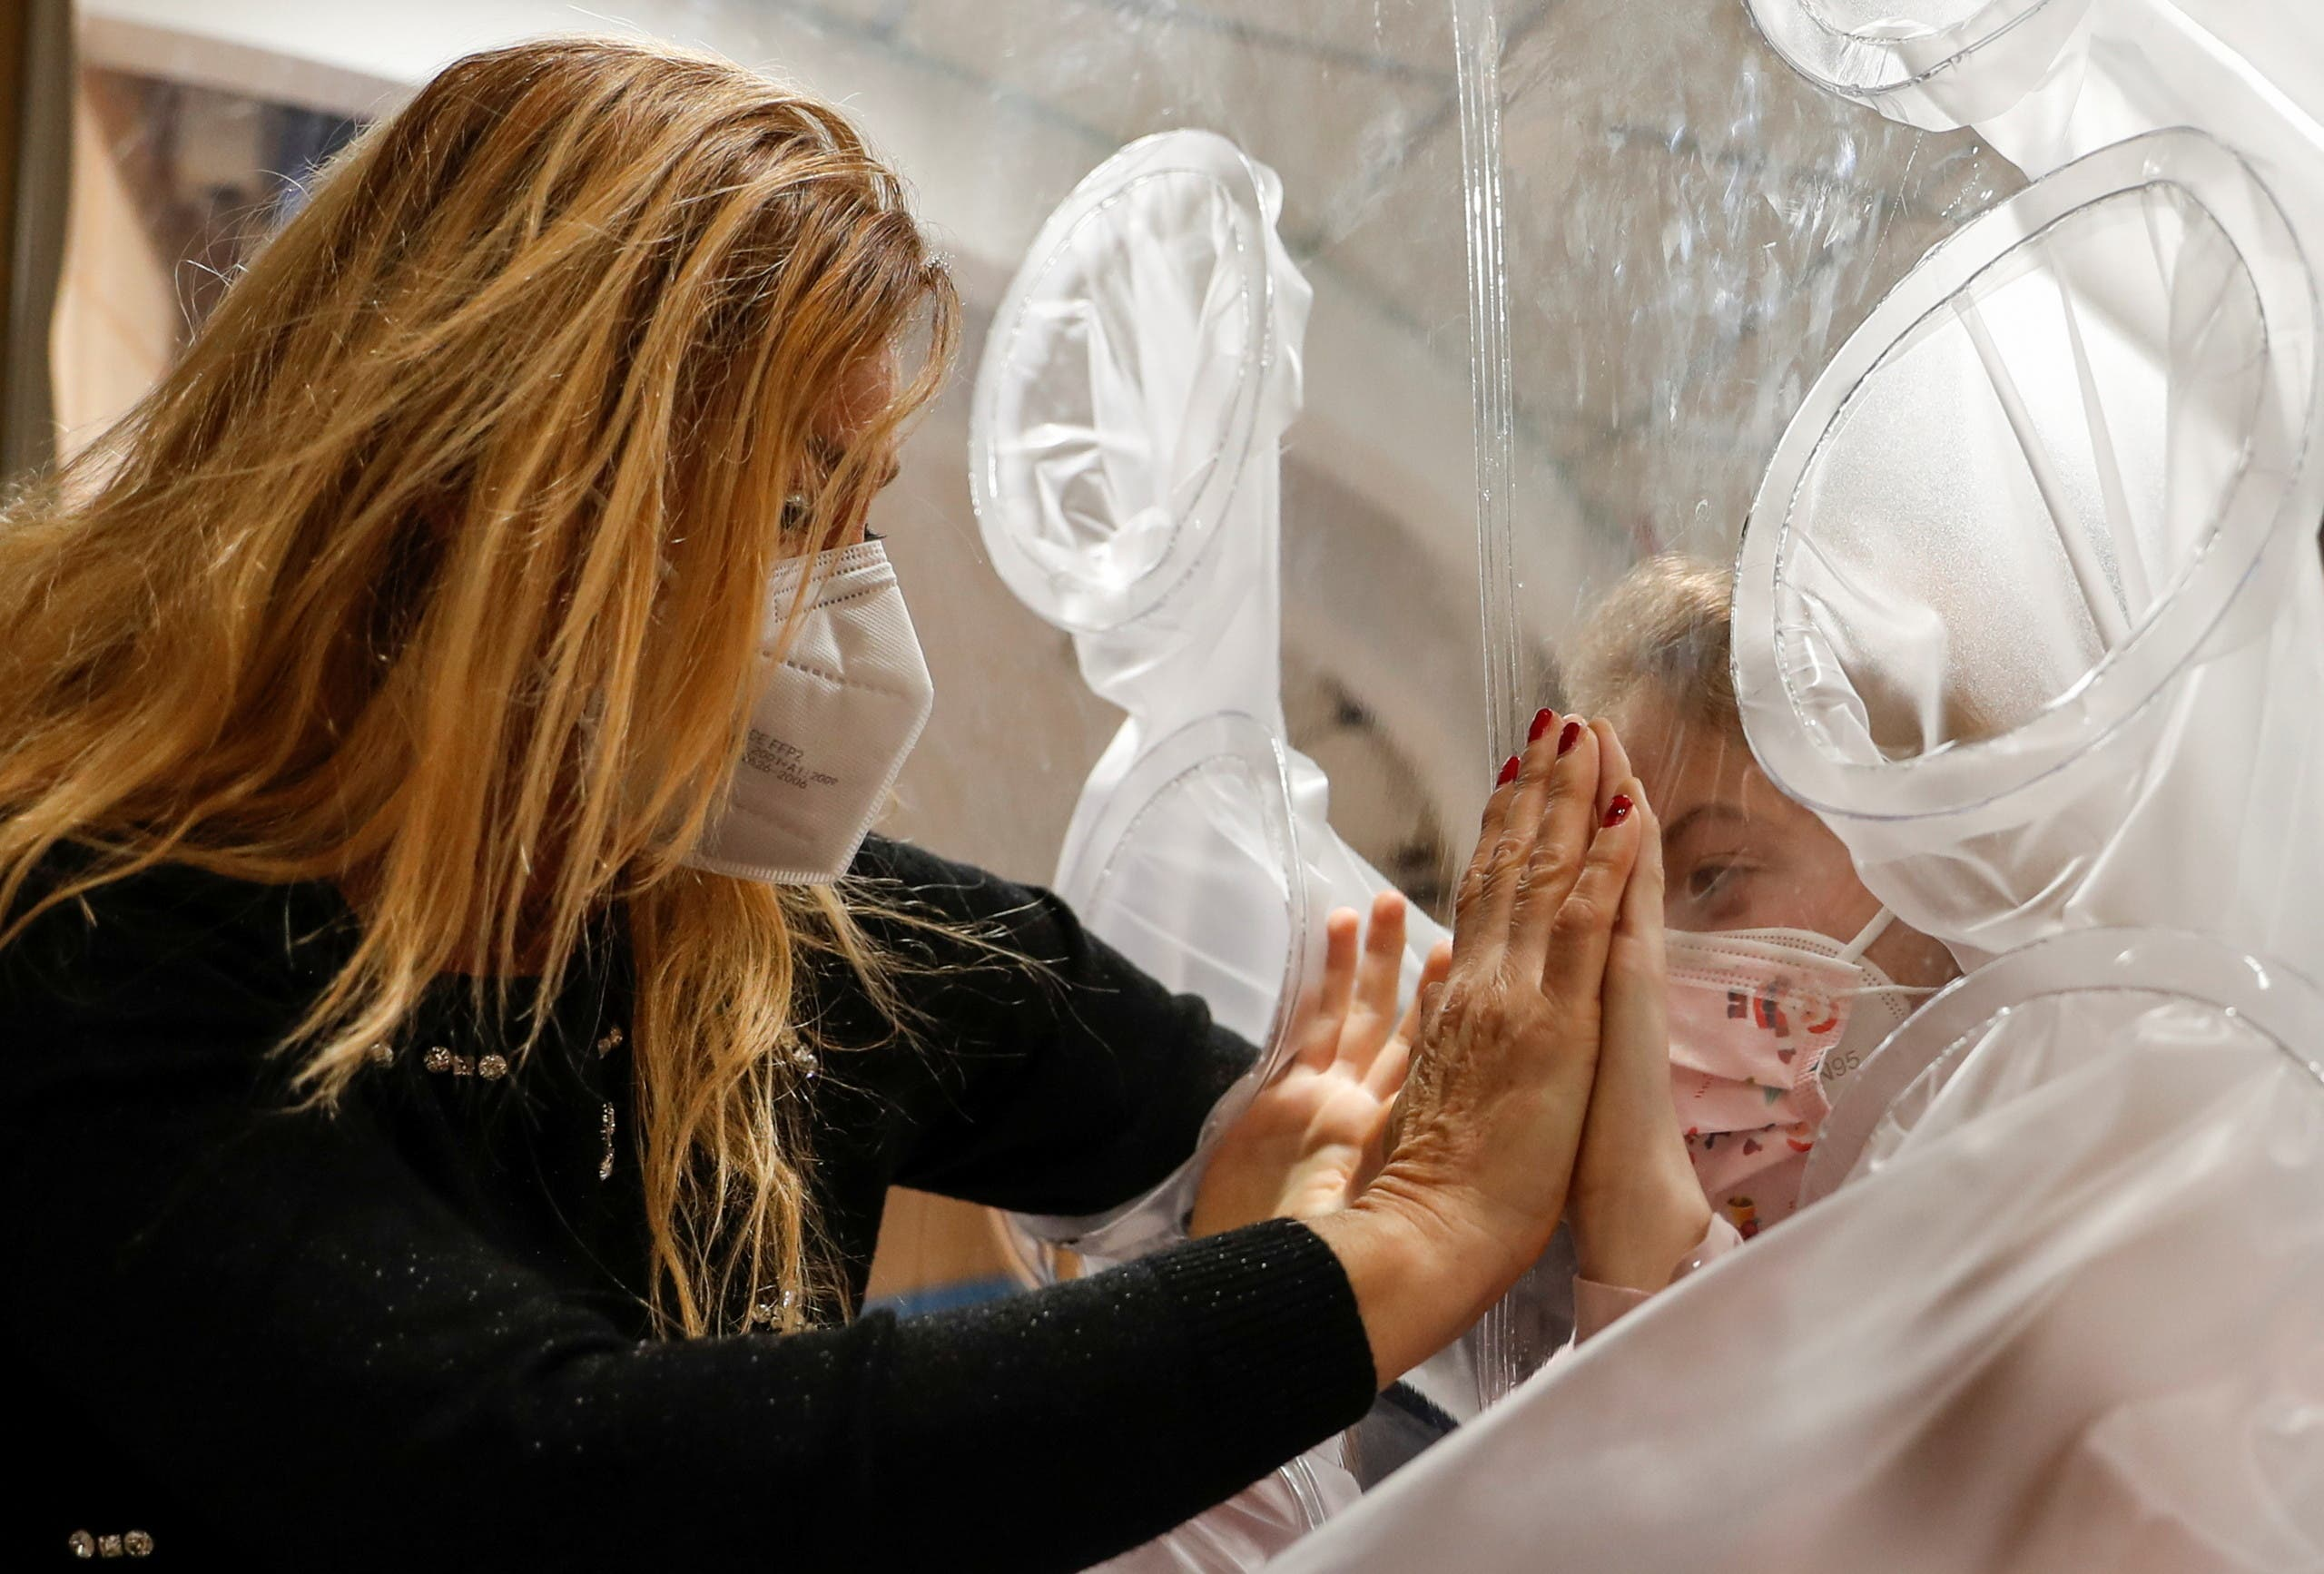 Hospitalized children hug their relatives through a plastic protection, in Rome. (Reuters)